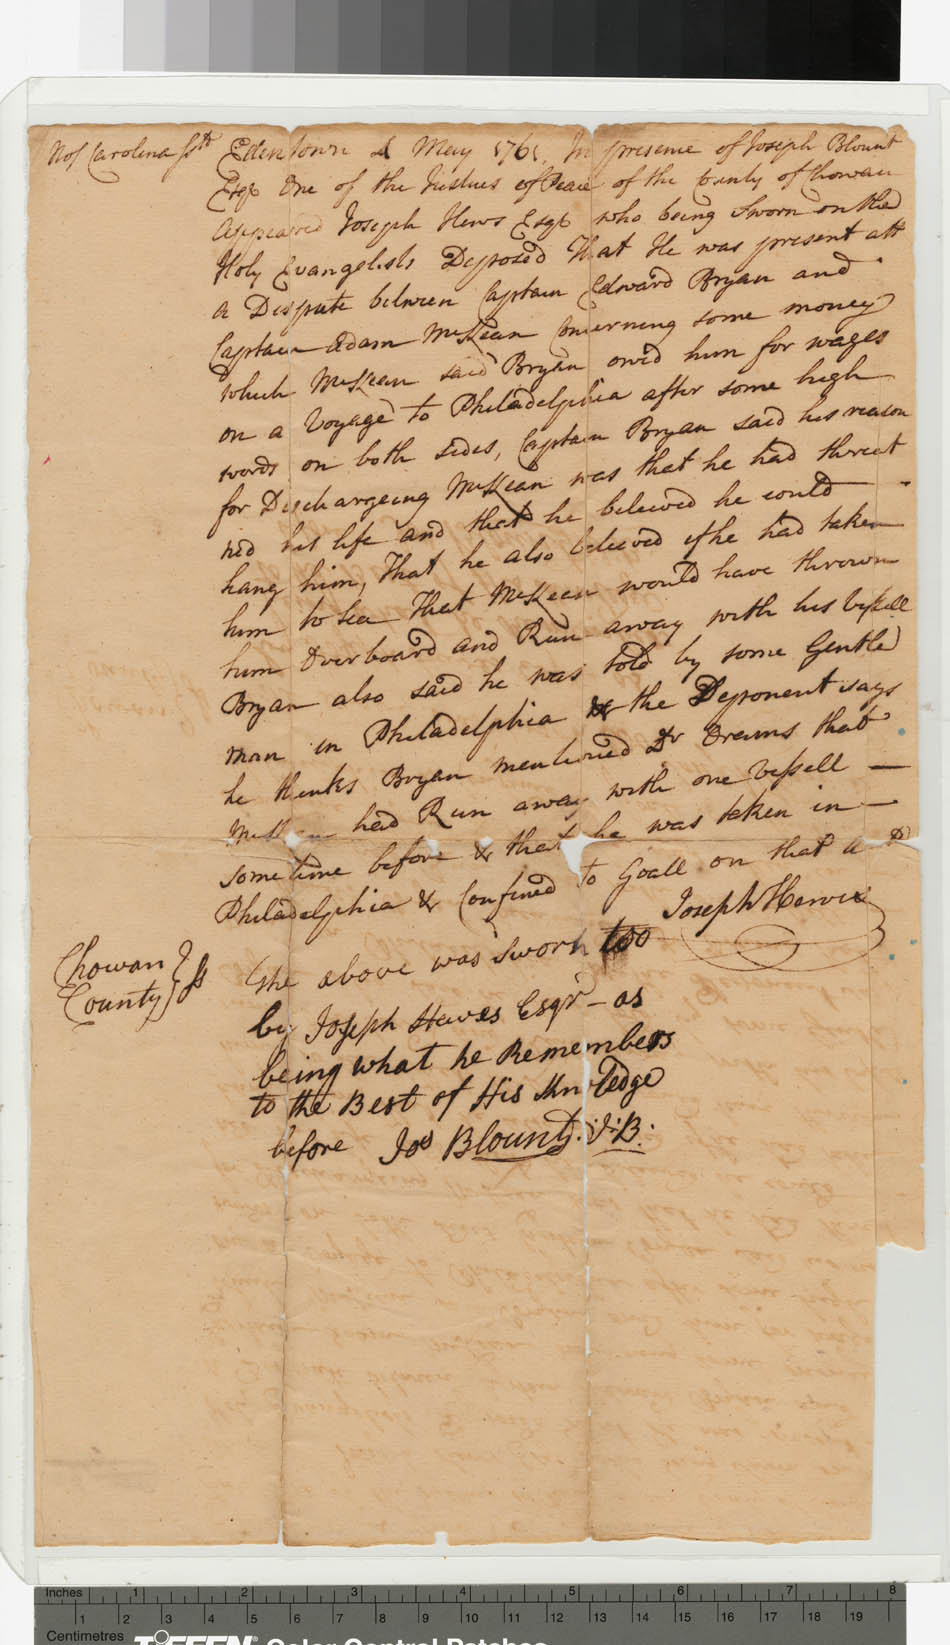 Document signed by Joseph Hewes